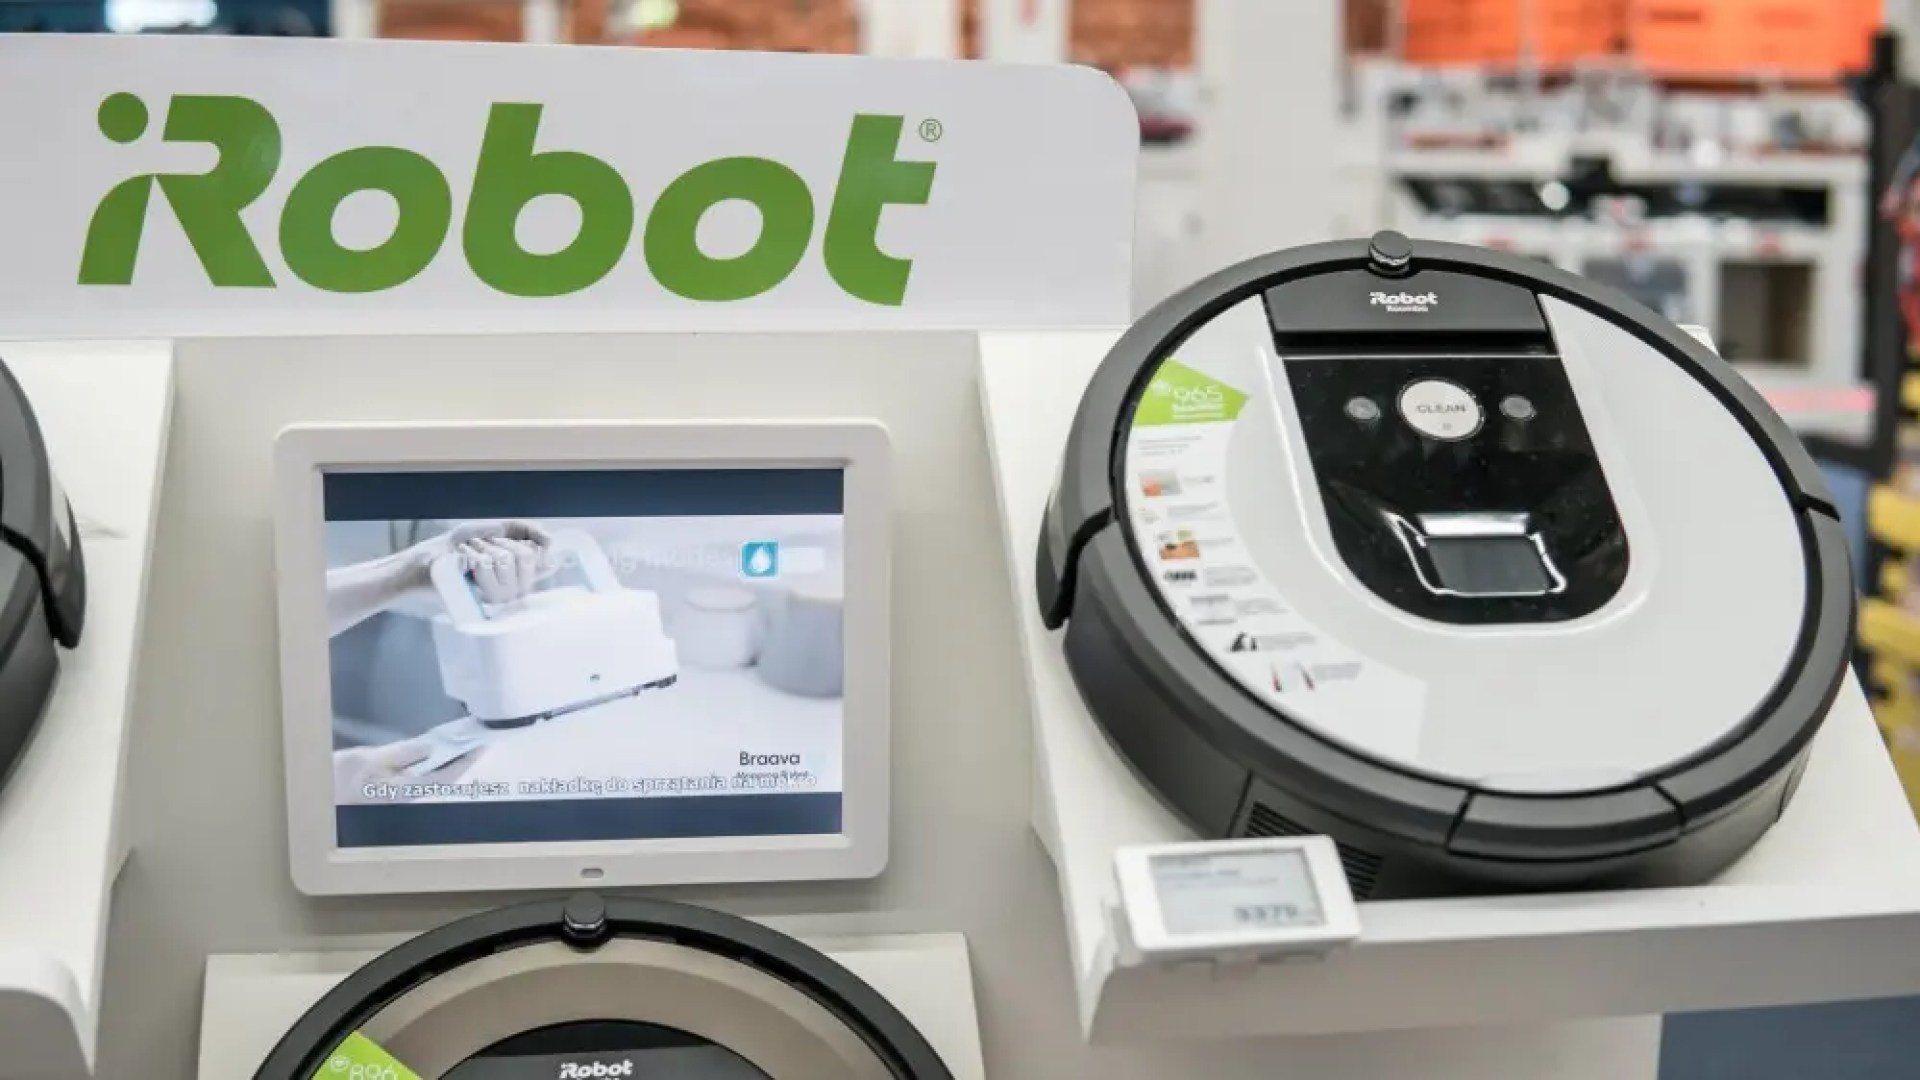 iRobot vacuums on display in a store